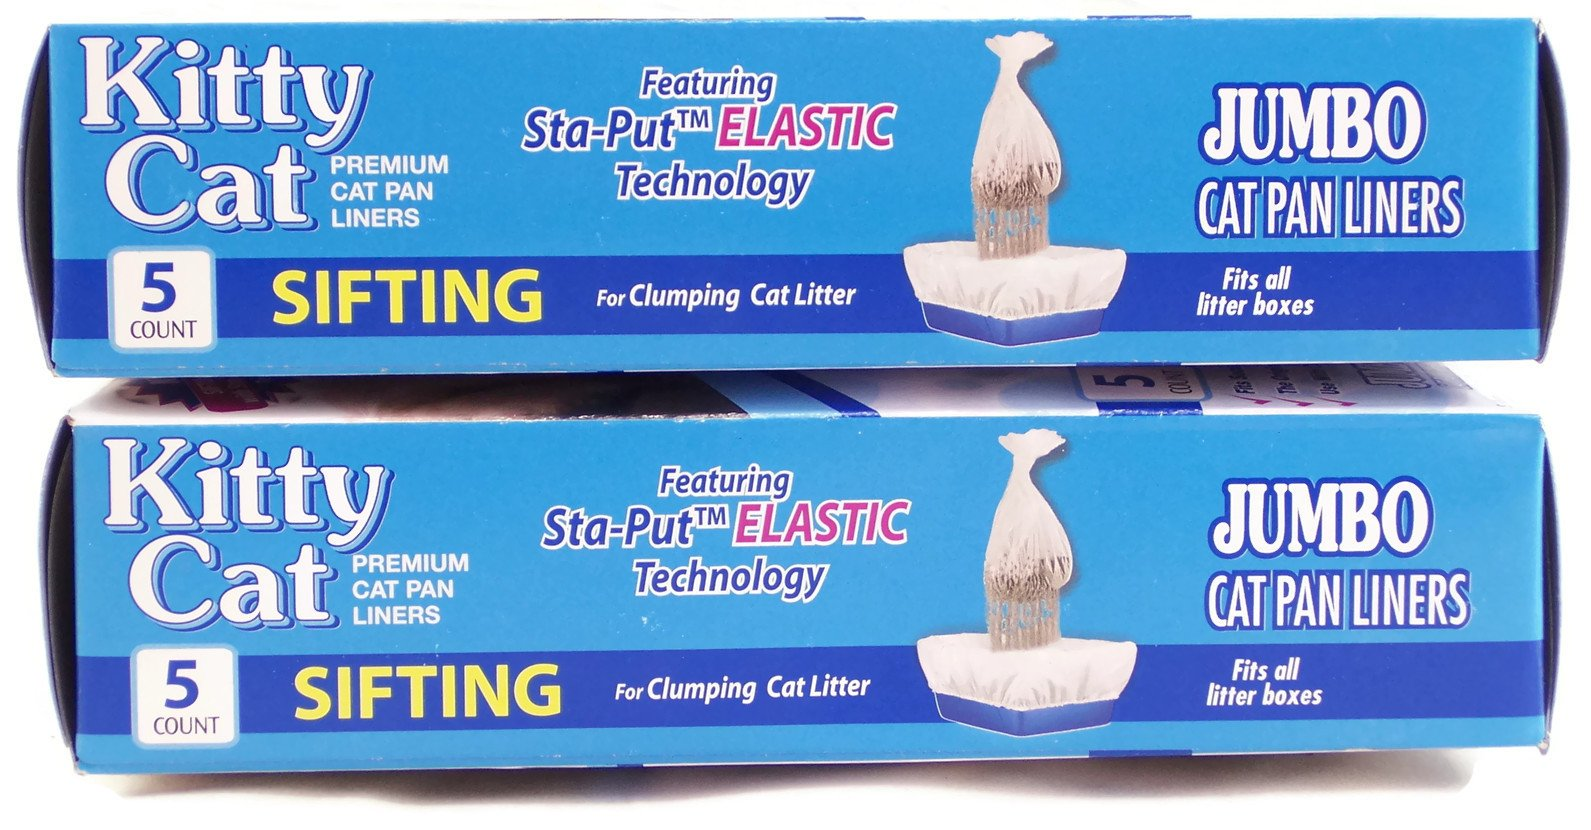 Alfapet Kitty Cat Sta-put Elastic Sifting Litter Box Liners Jumbo Size 5 Count (2-Pack/Boxes) by Alfa Pet (Image #2)